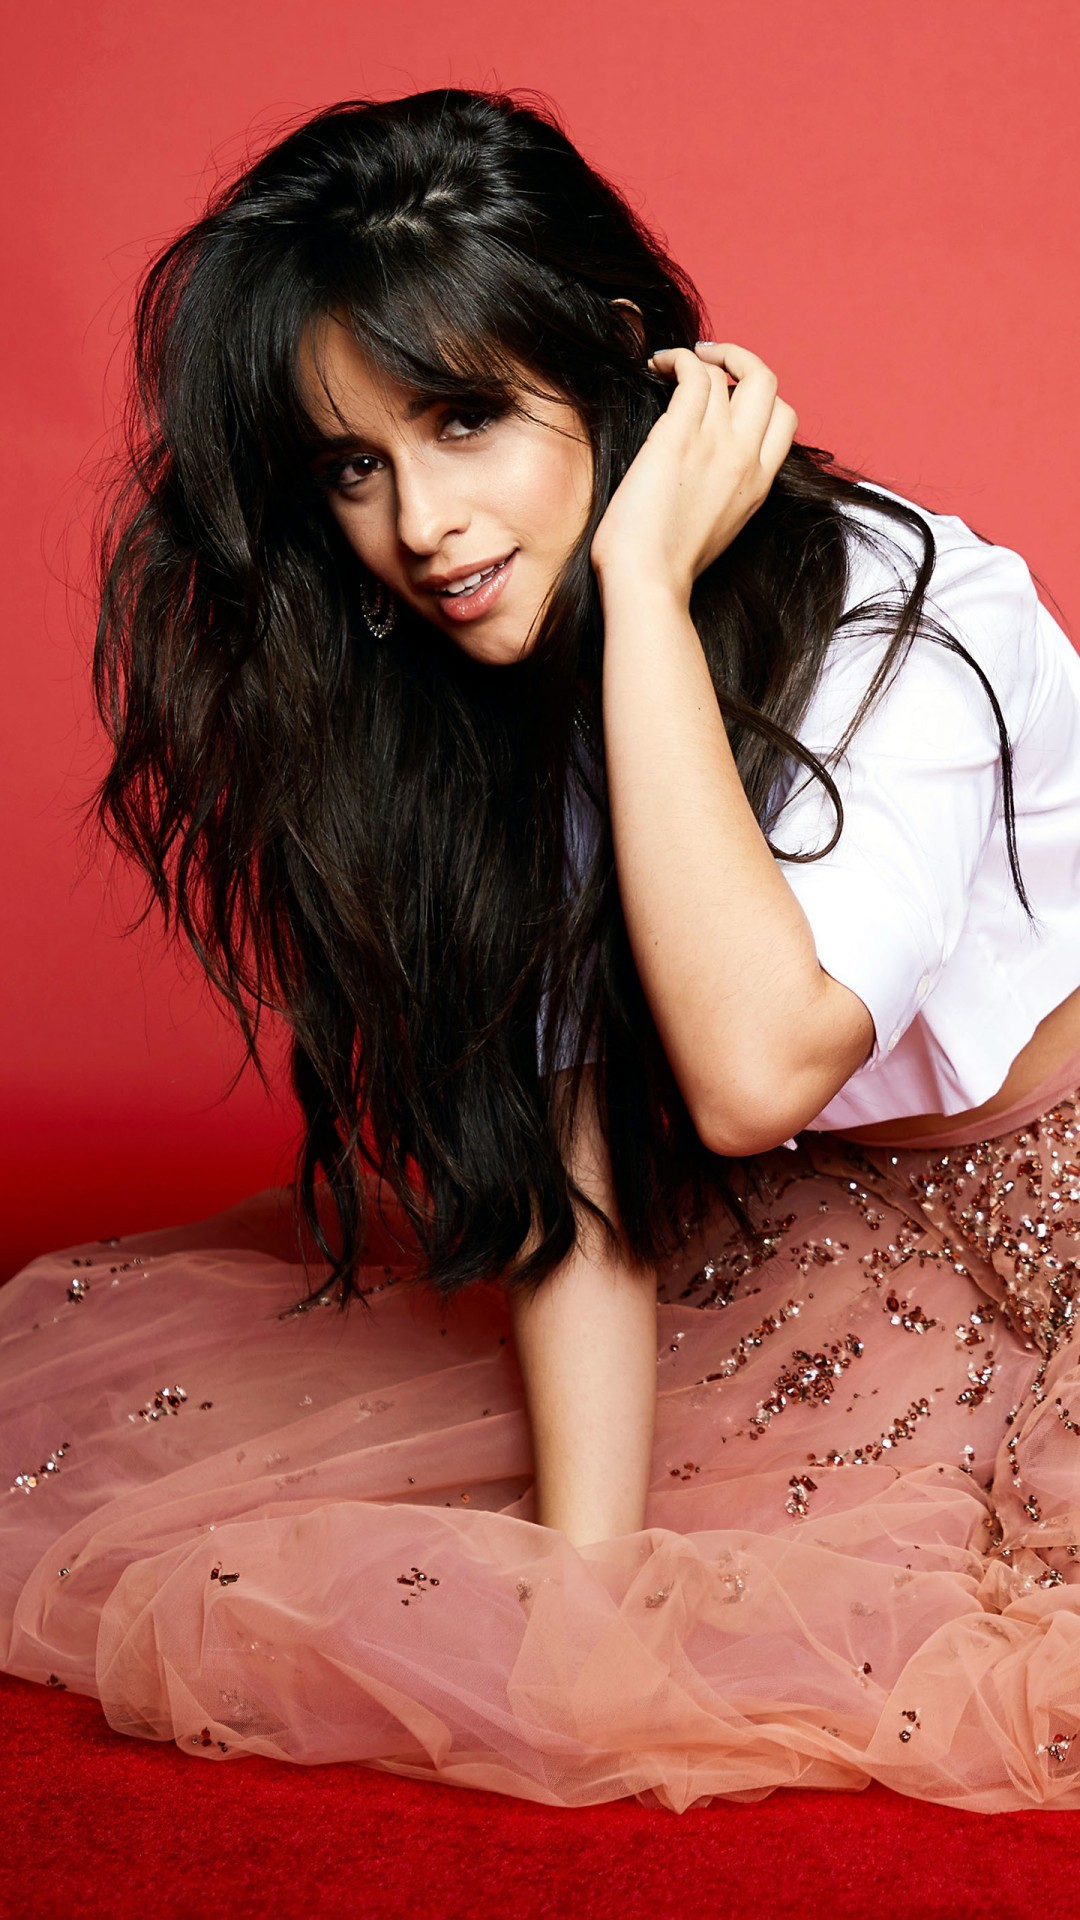 Free Camila Cabello phone wallpaper by seds79